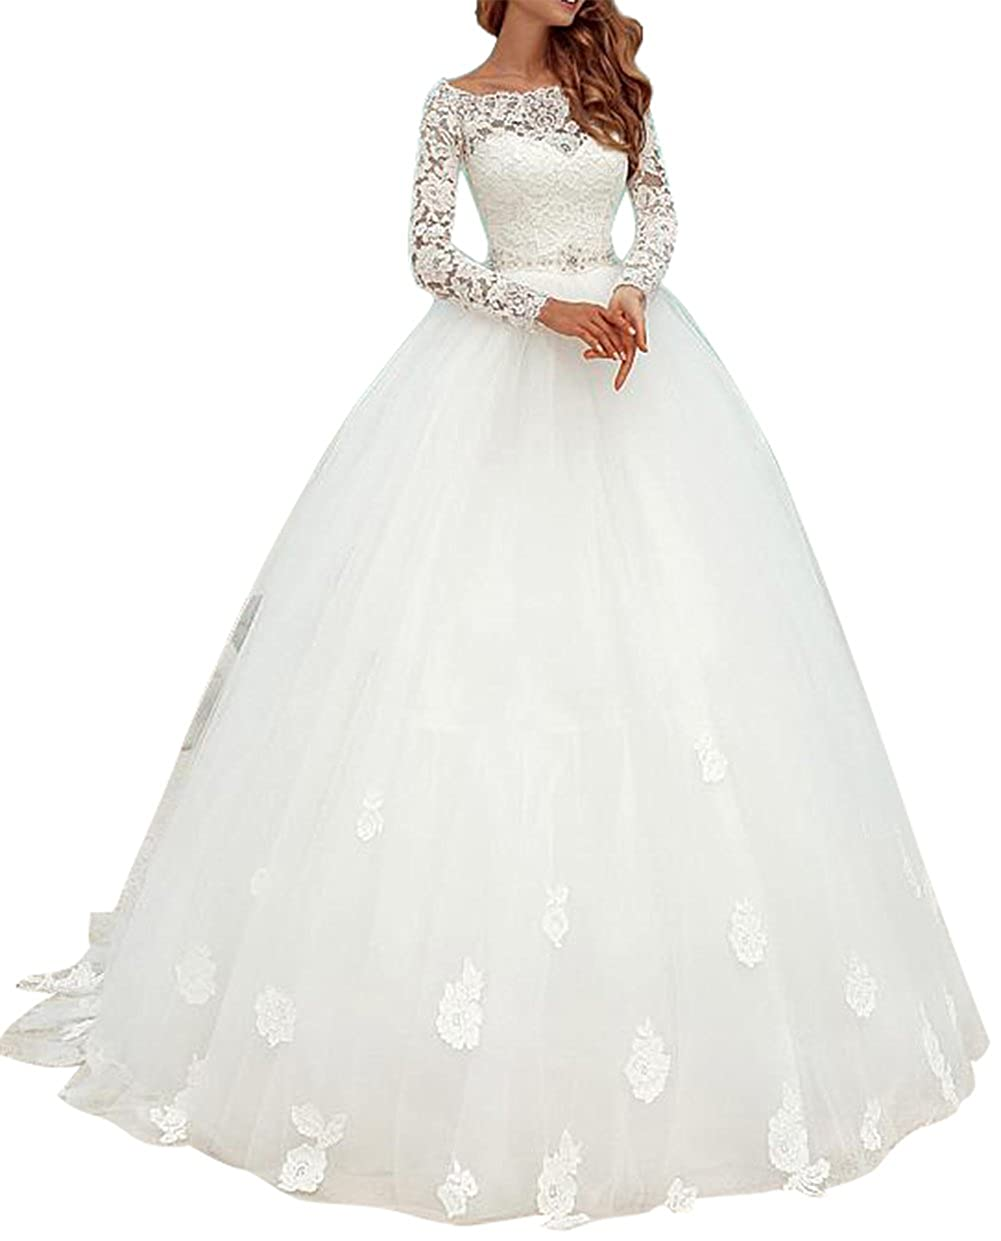 Ethel Womens Appliques Lace Top Ball Gown Wedding Dresses With Long